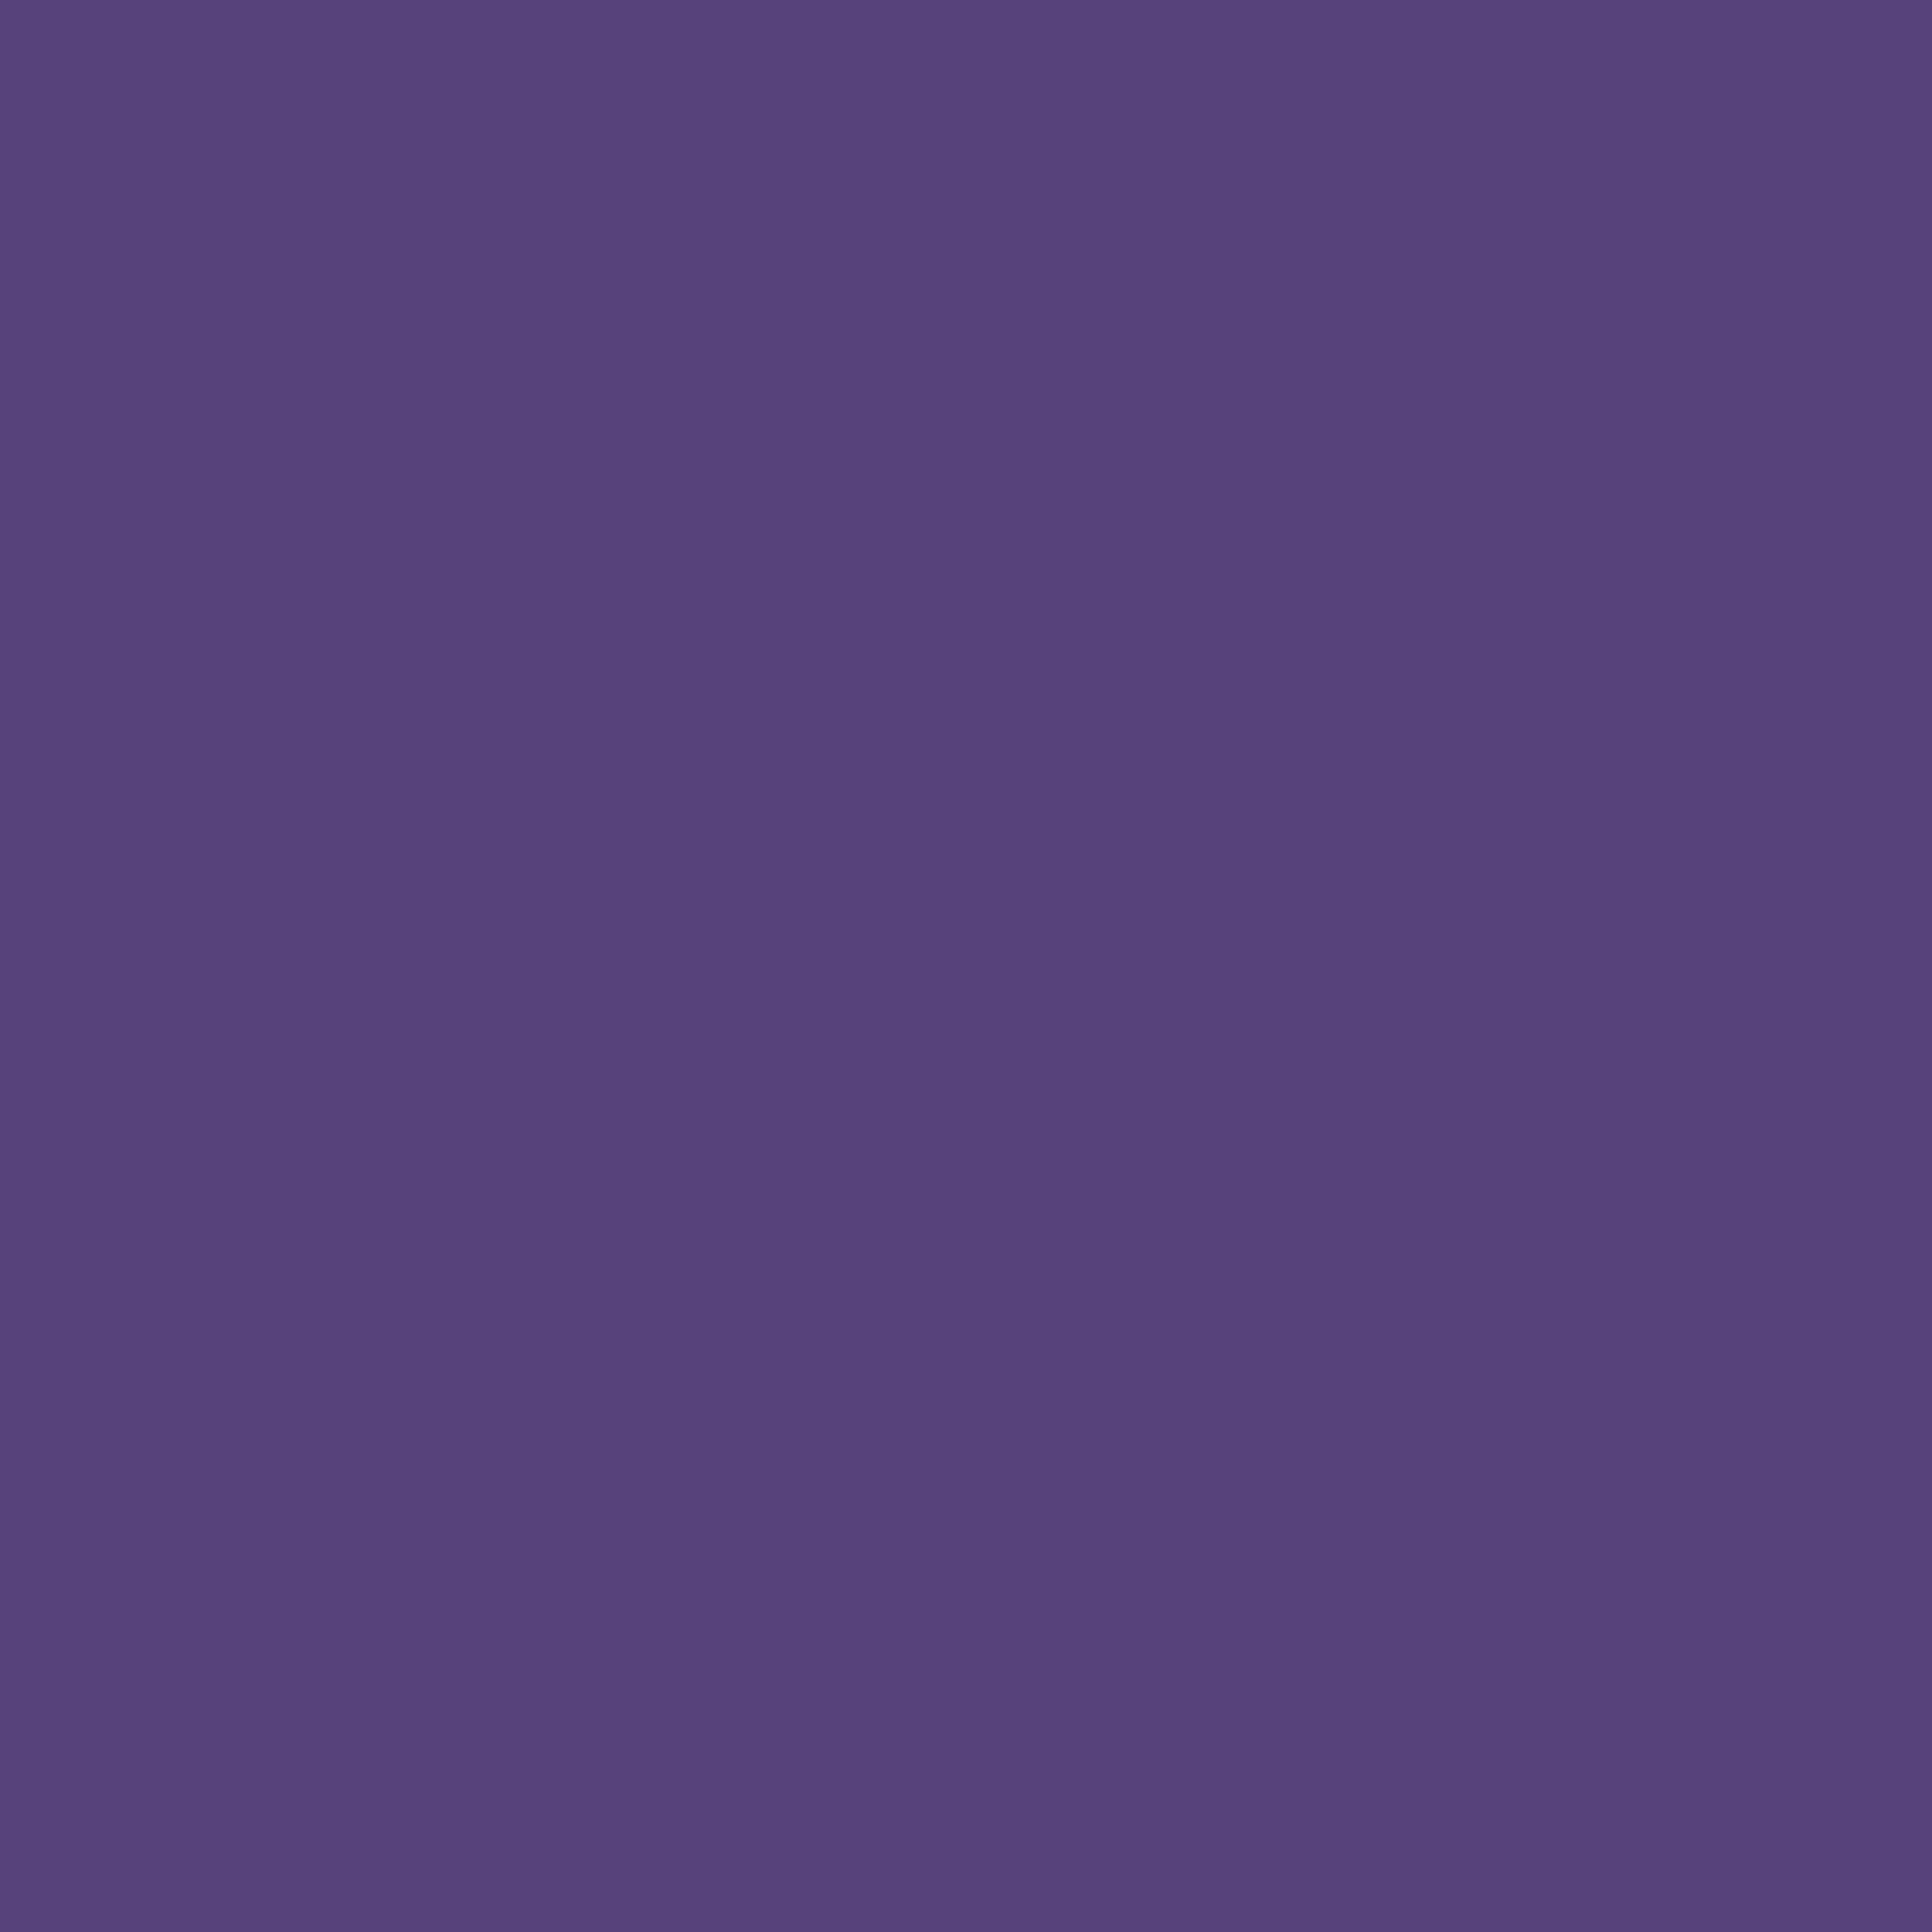 2732x2732 Cyber Grape Solid Color Background